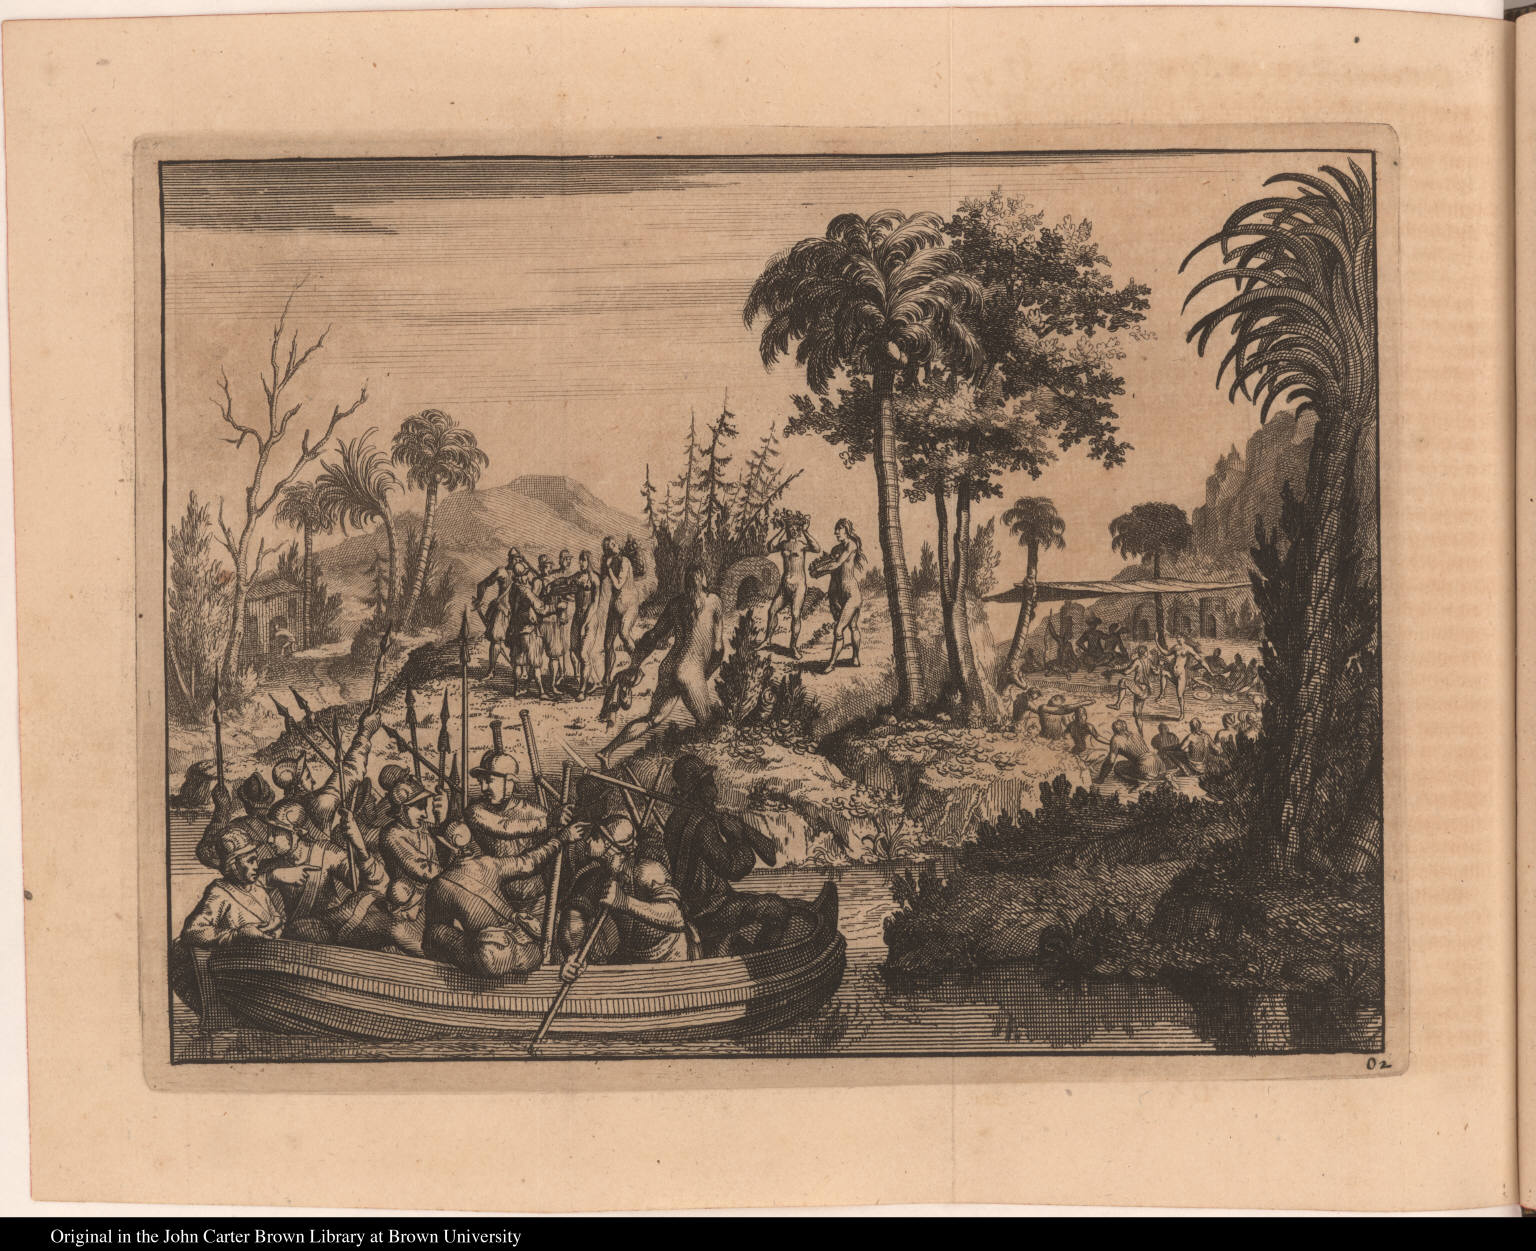 [European soldiers land on an island]